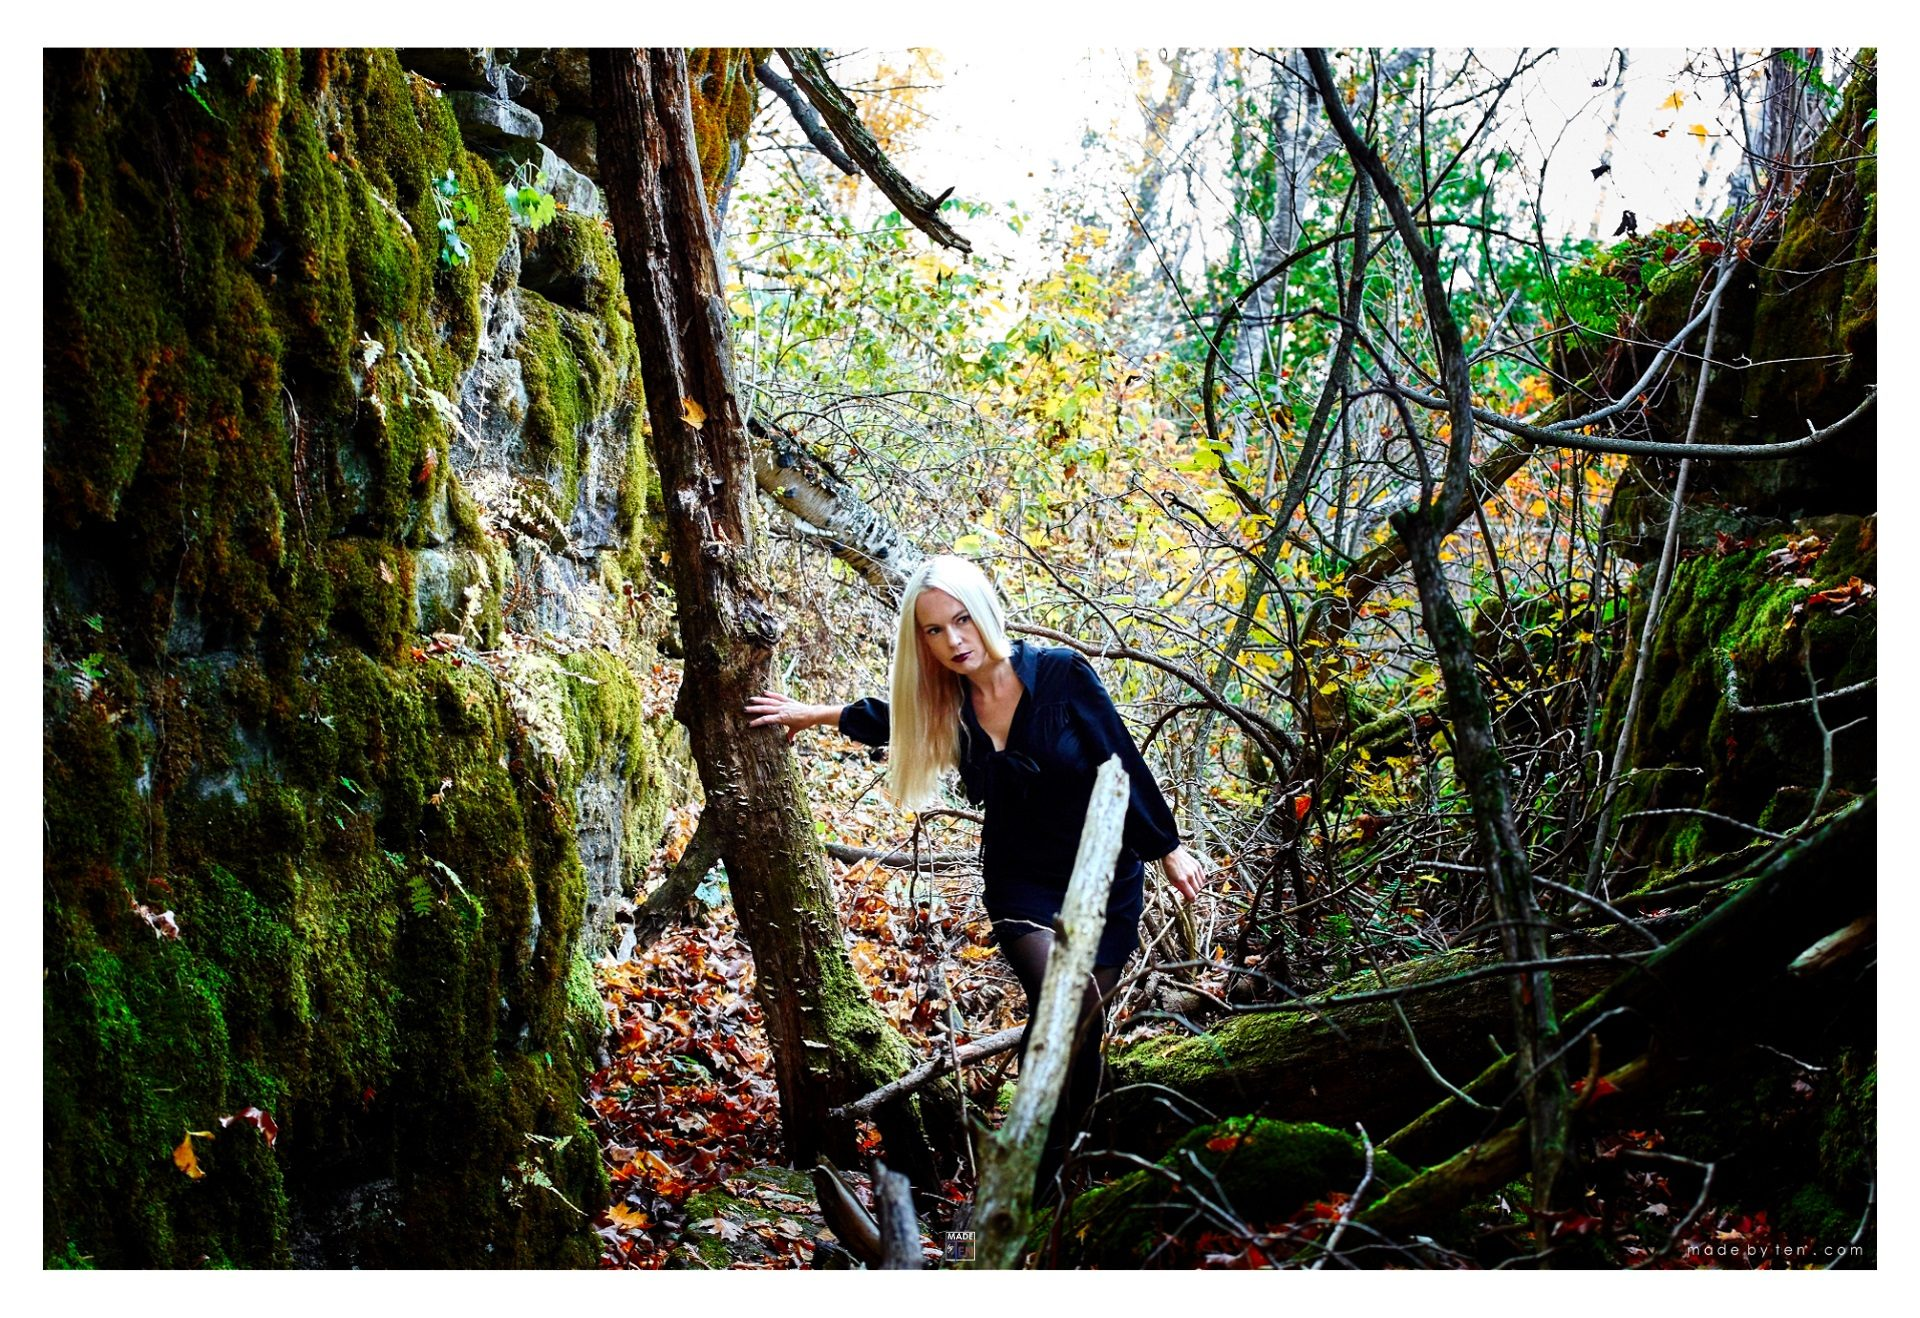 Forest Cave Exploring - GTA Women Fantasy Photography